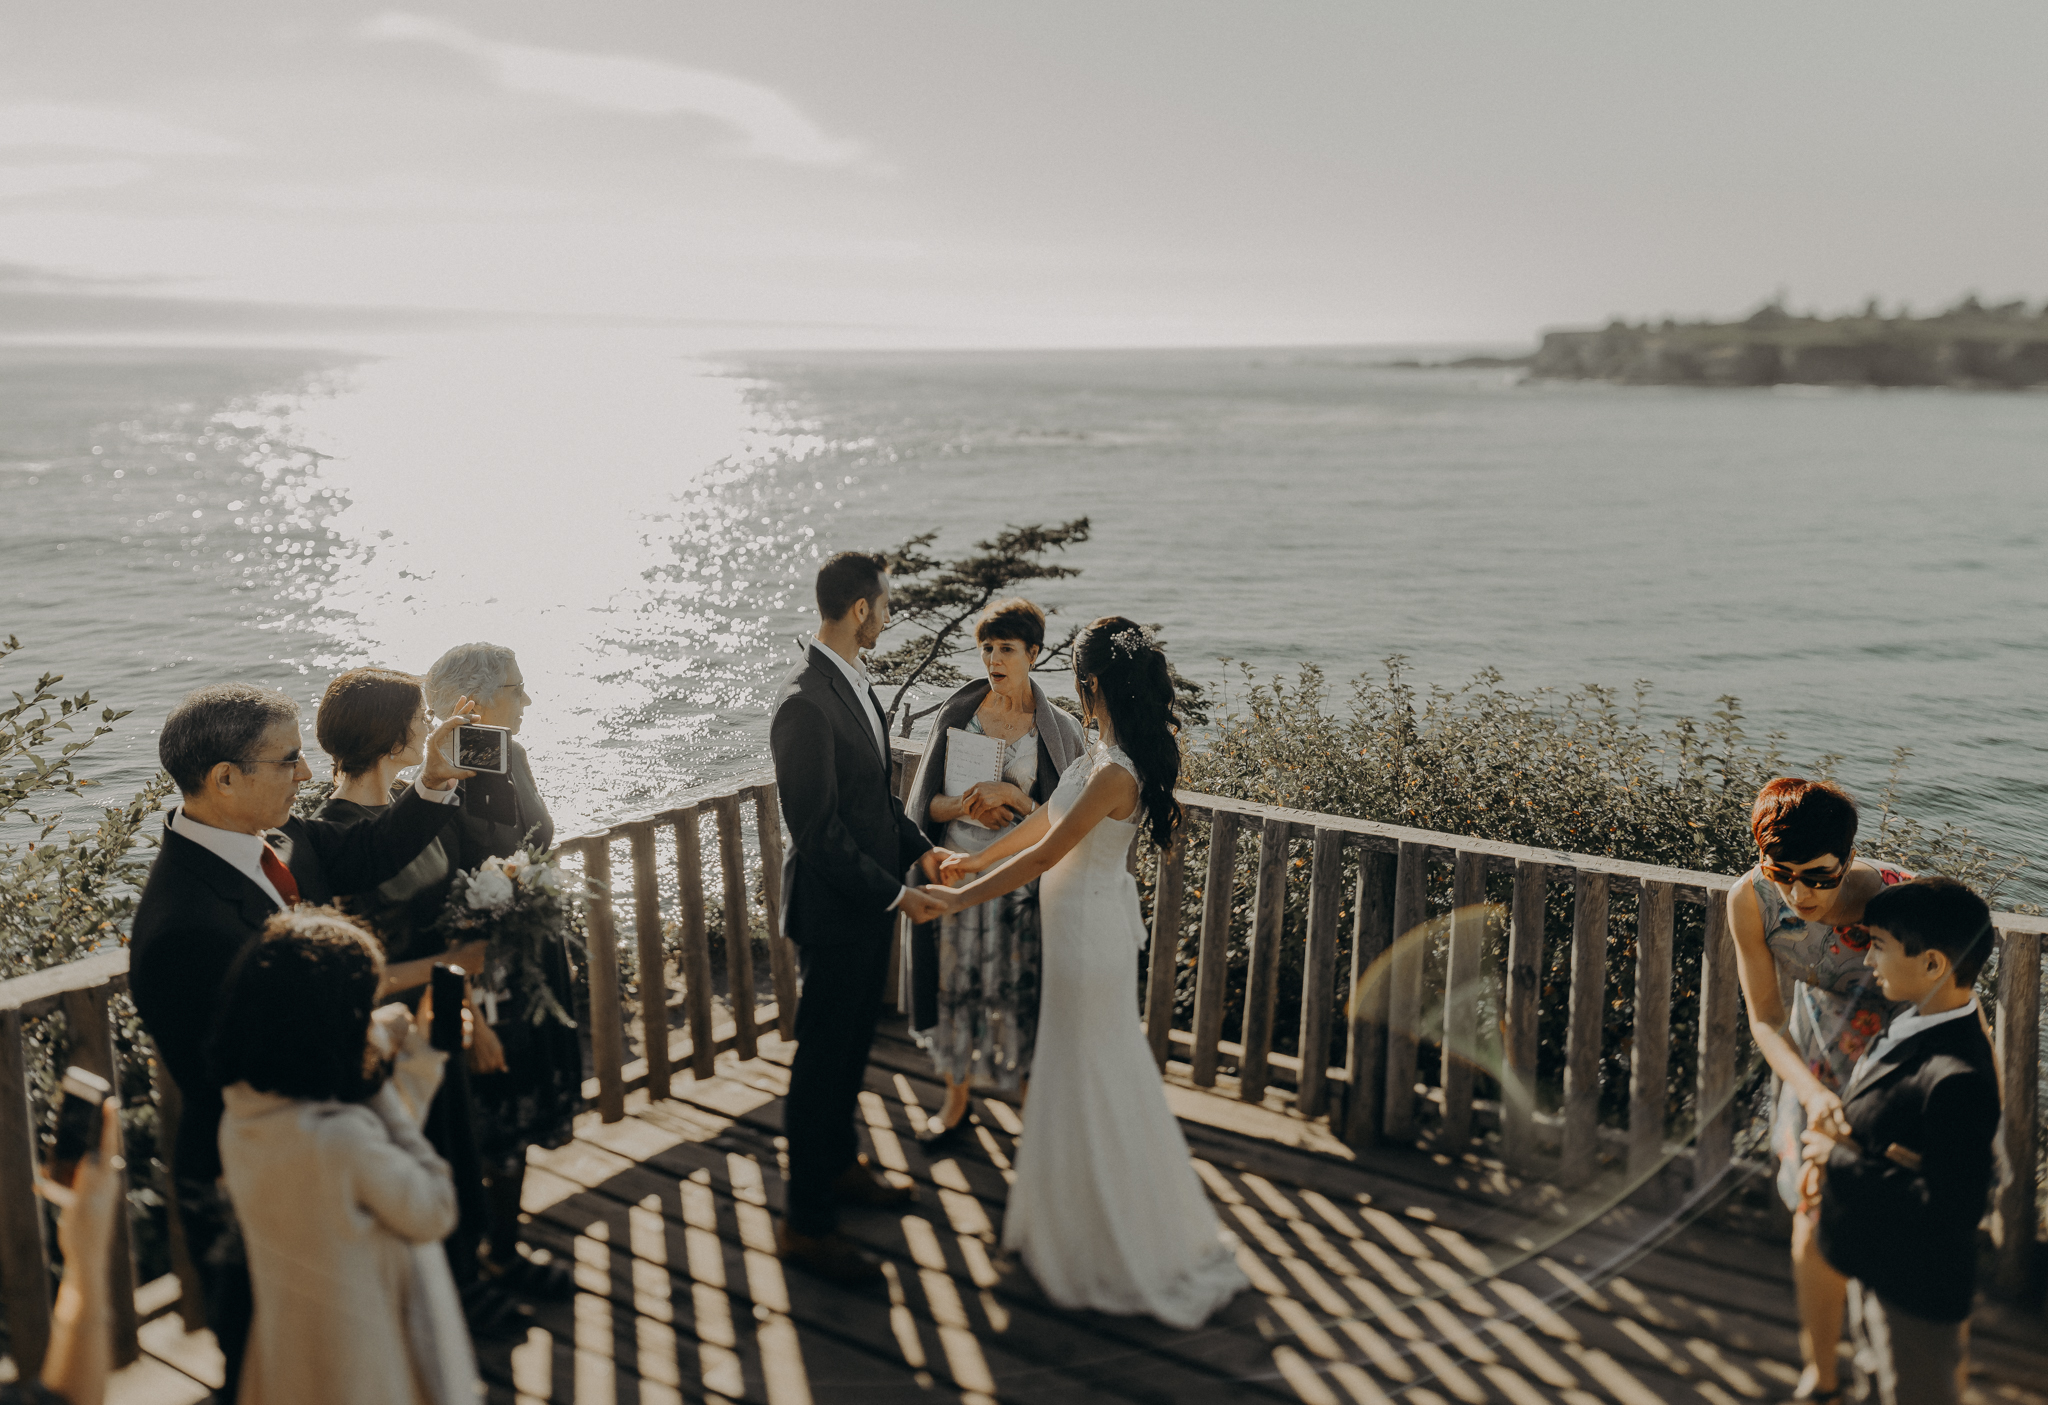 Isaiah + Taylor Photography - Cape Flattery Elopement, Olympia National Forest Wedding Photographer-048.jpg